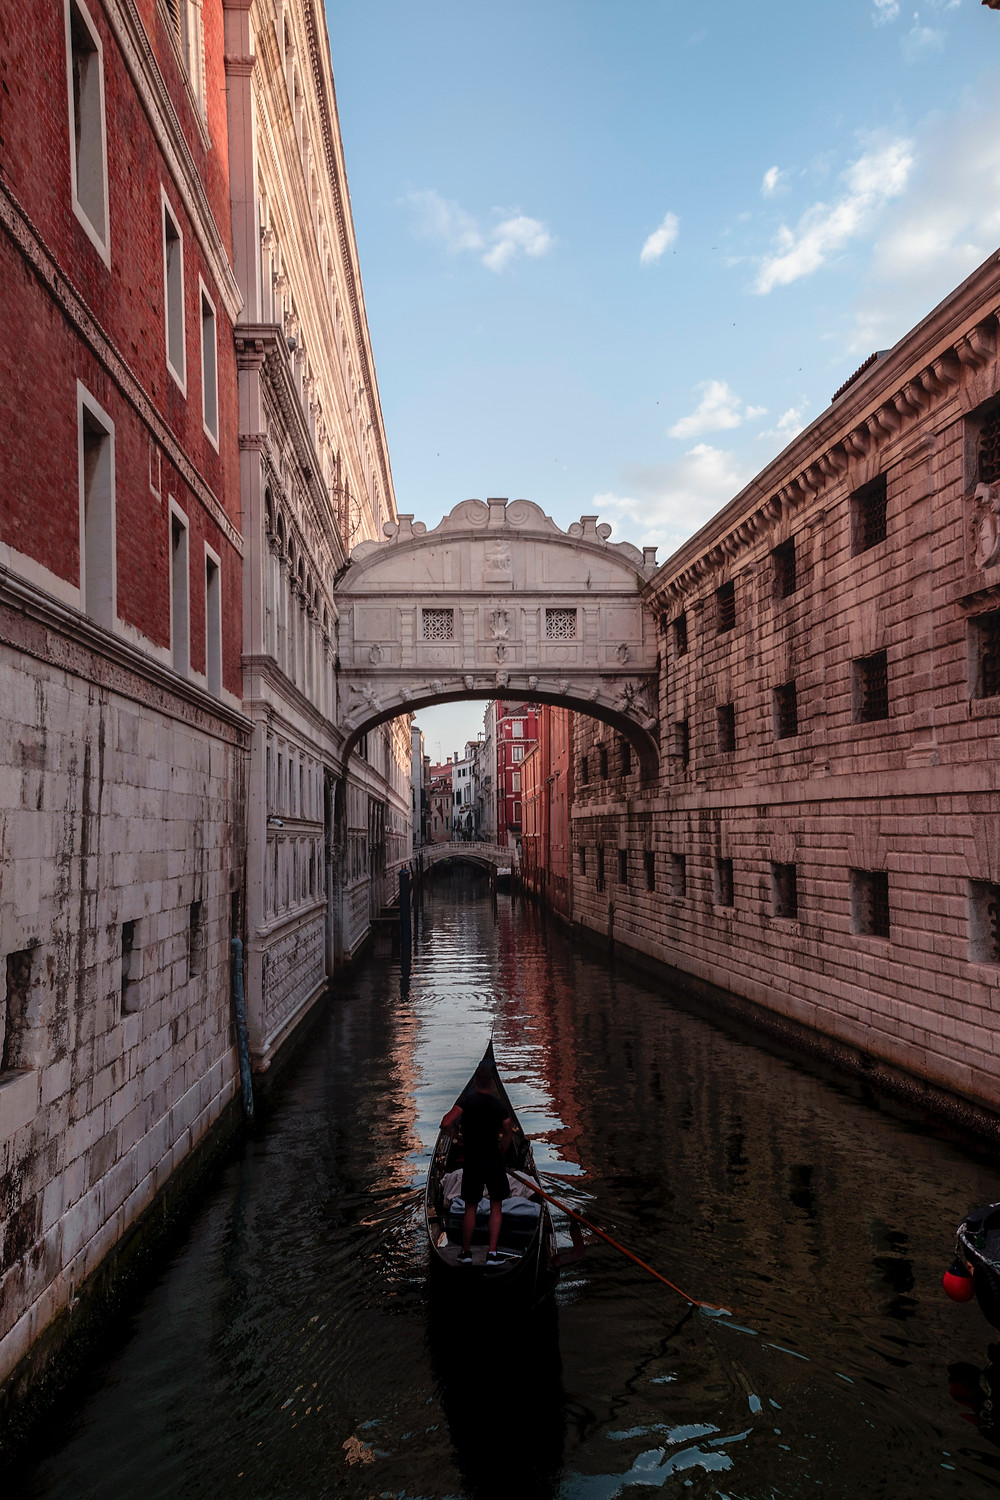 The Bridge of Sighs, Venice, with a gondola in the foreground